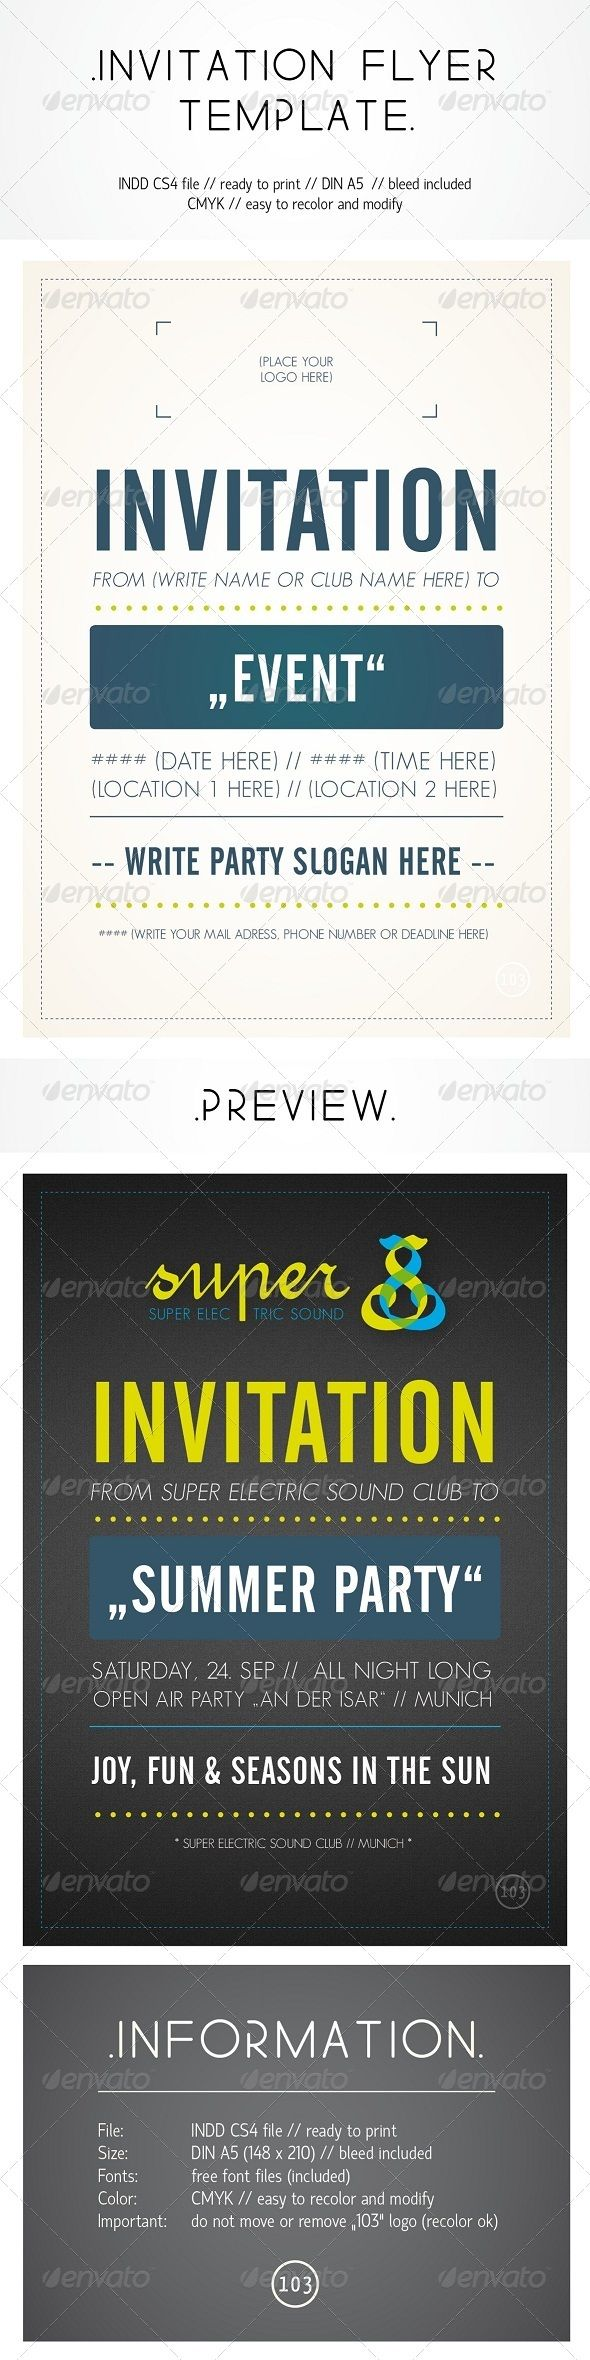 Buy Invitation Flyer Template by on